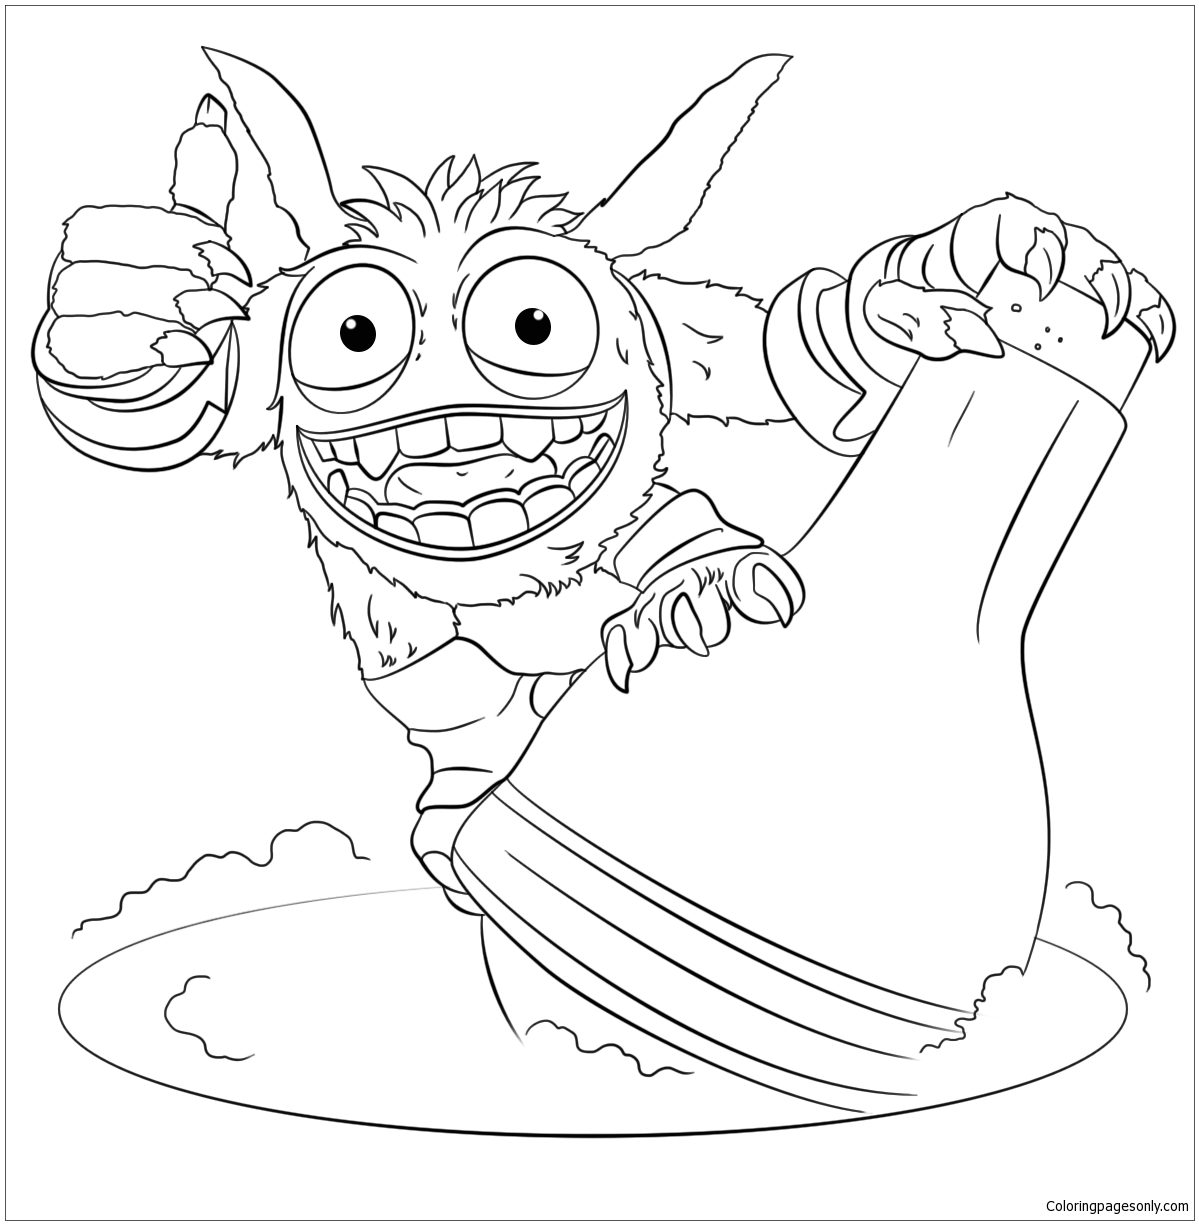 Pop Fizz Coloring Page! | Candy coloring pages, Coloring pages ... | 1225x1199